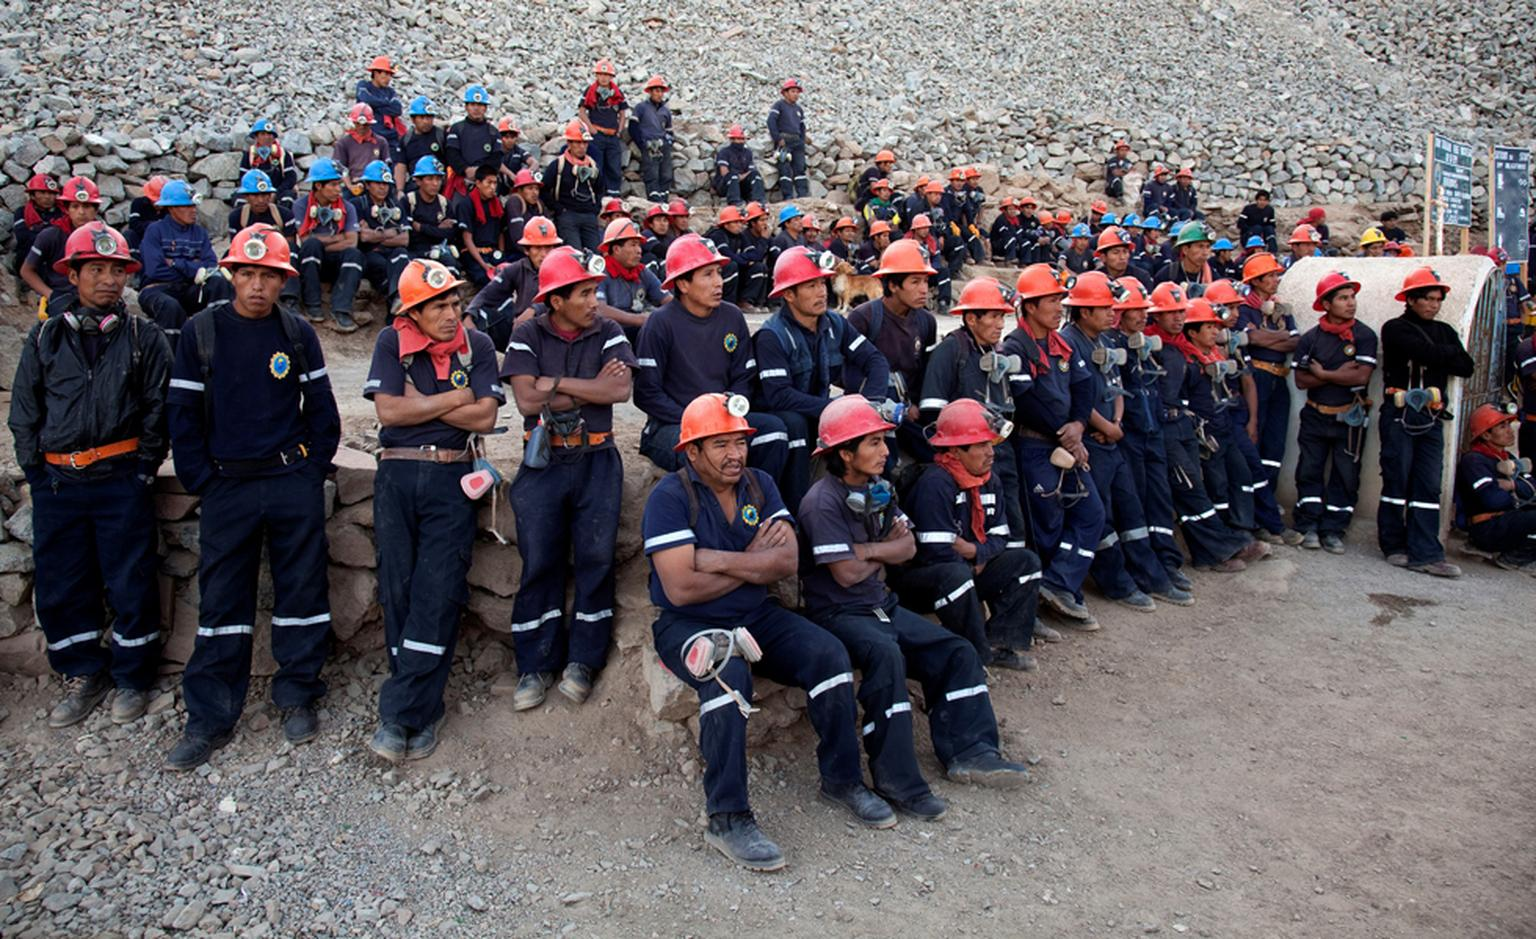 Workers gather at 7:00 am outside the gold mine in Santa Filomena, in Peru. These miners are guaranteed a fair deal and safe working conditions under the Fairtrade regime. Photo: Eduardo Martino